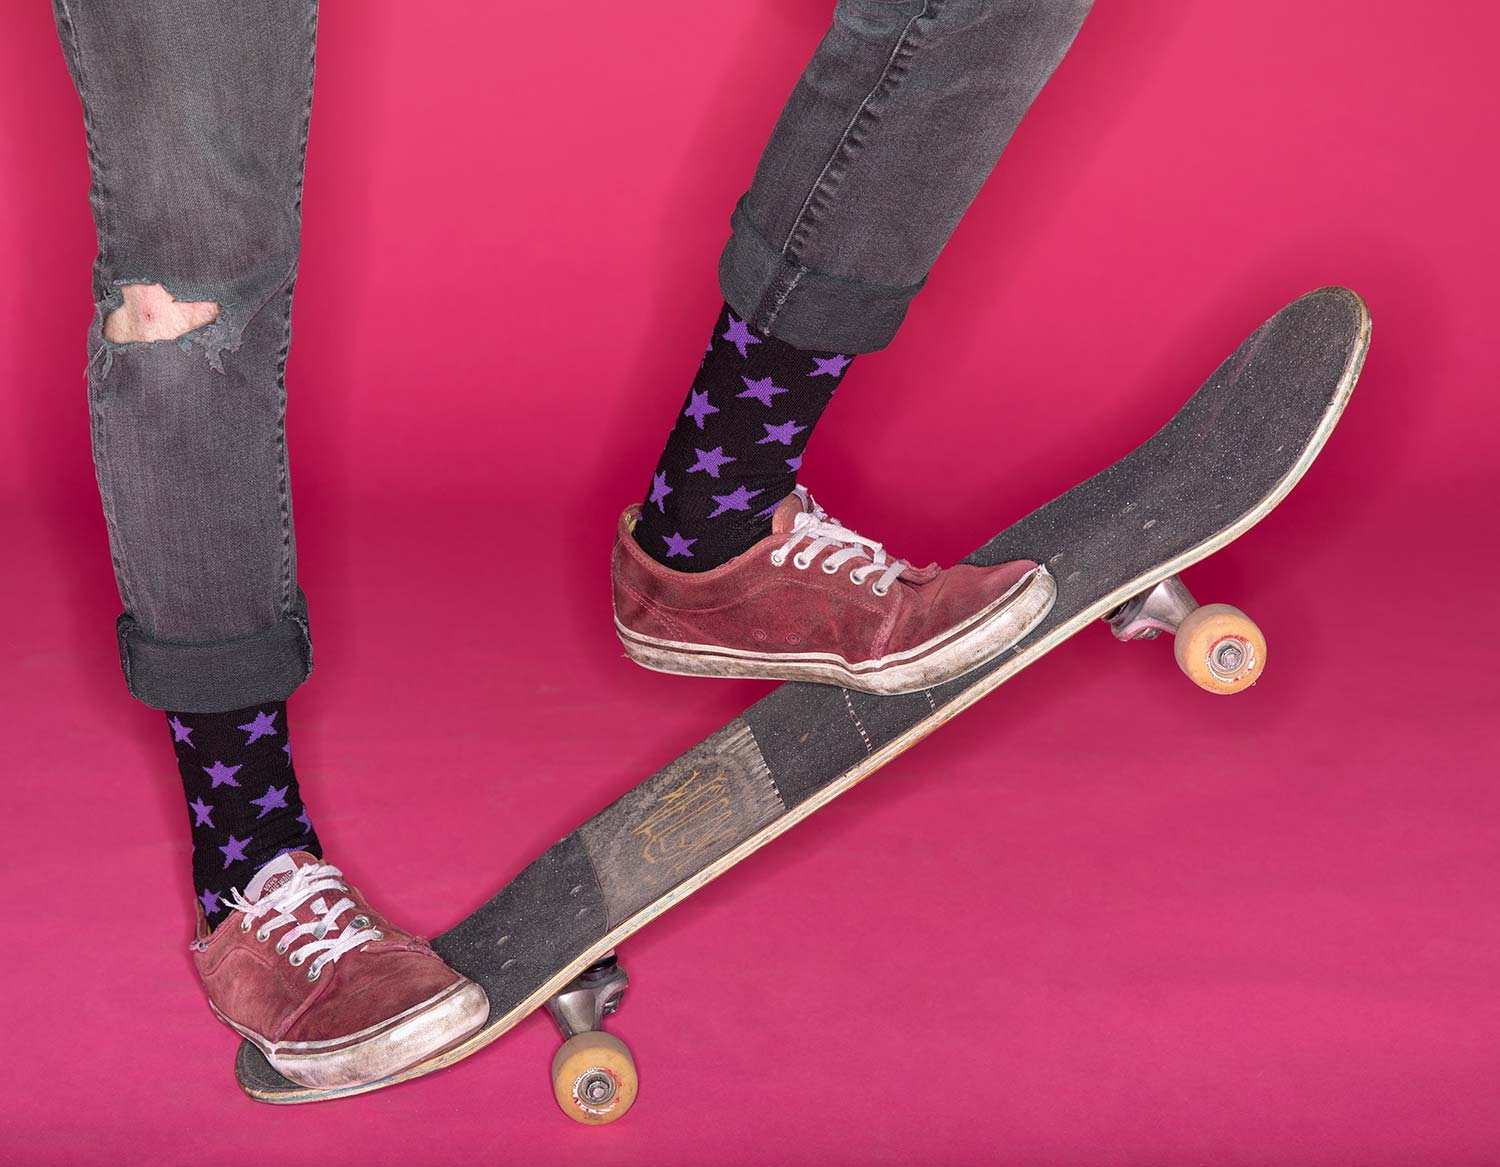 Person wearing black let's Go Crazy Socks while skateboarding on pink background